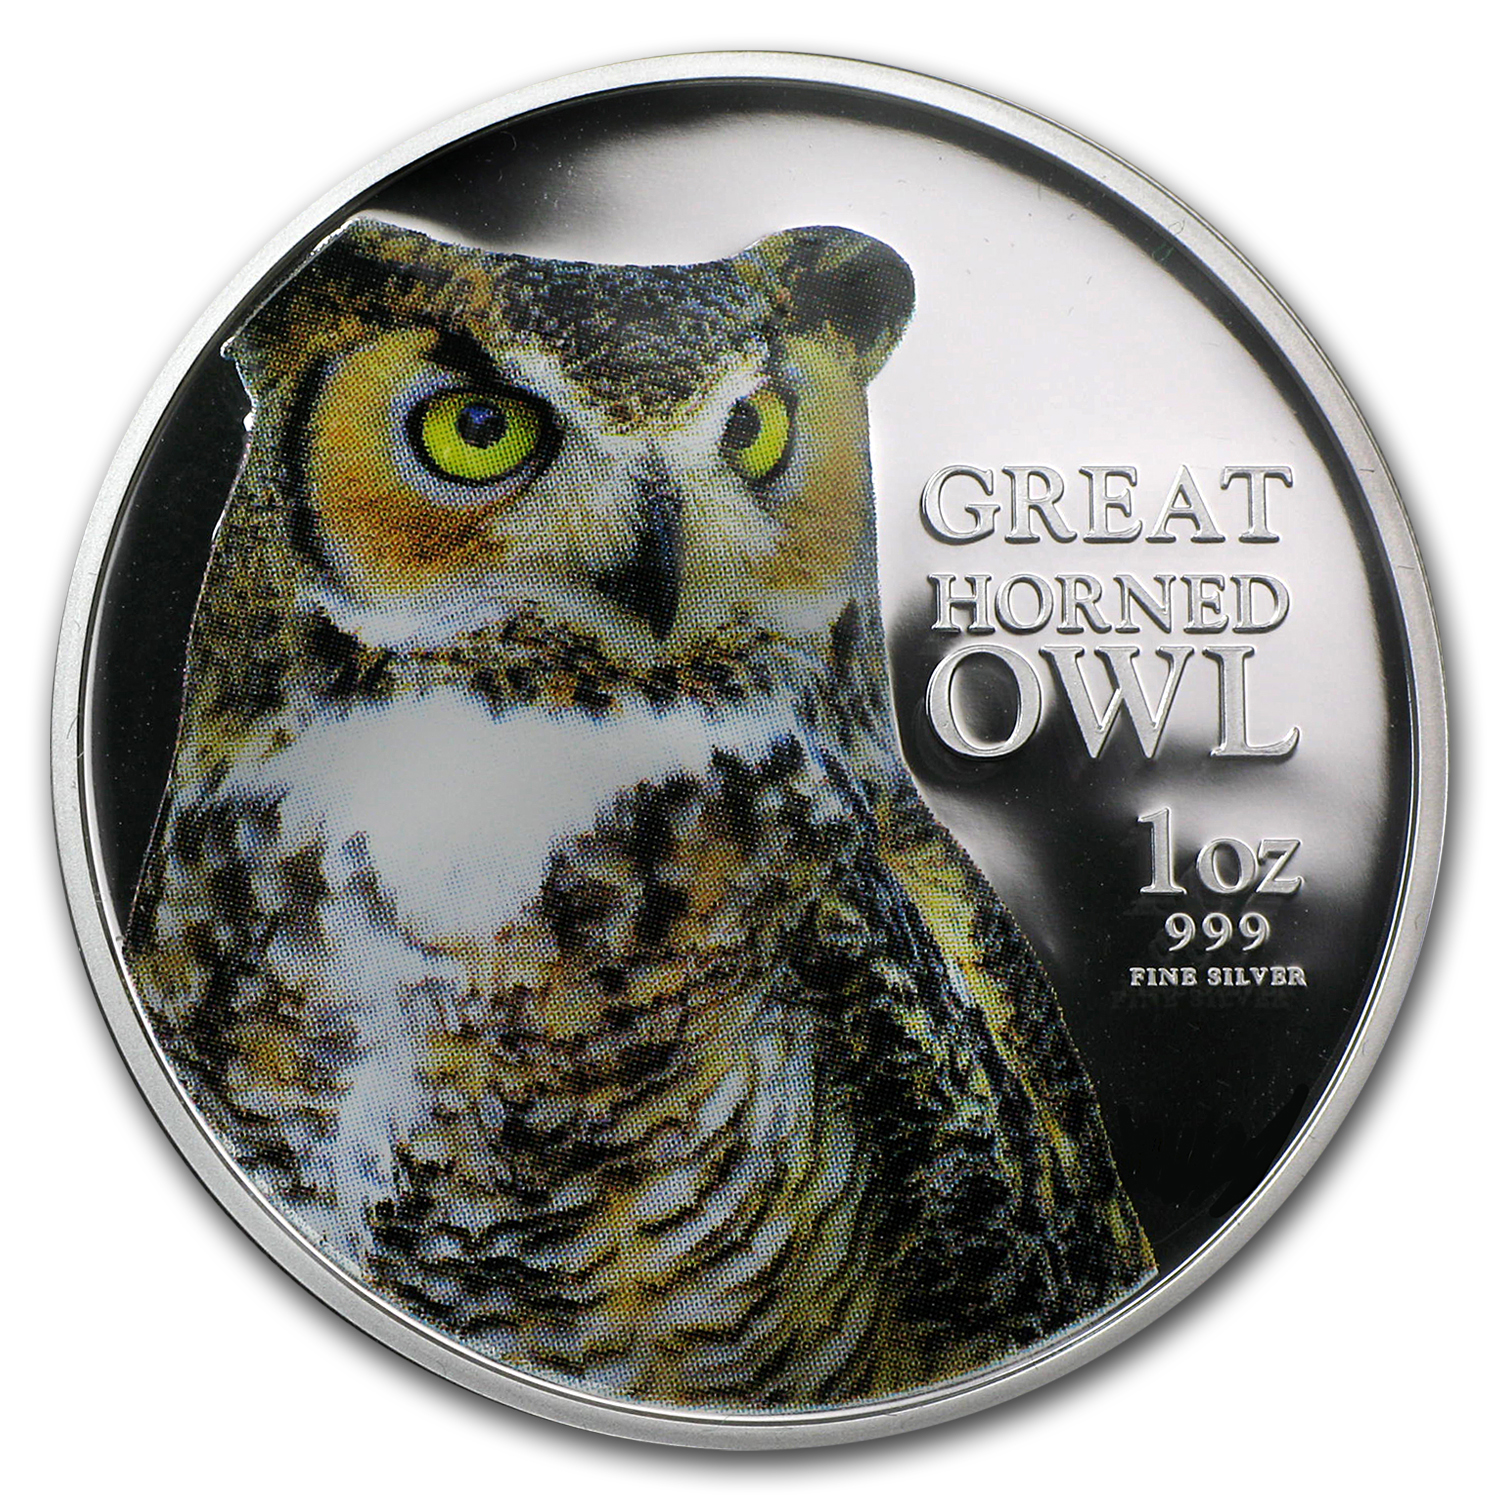 2013 Niue 1 oz Silver $2 Great Horned Owl Proof